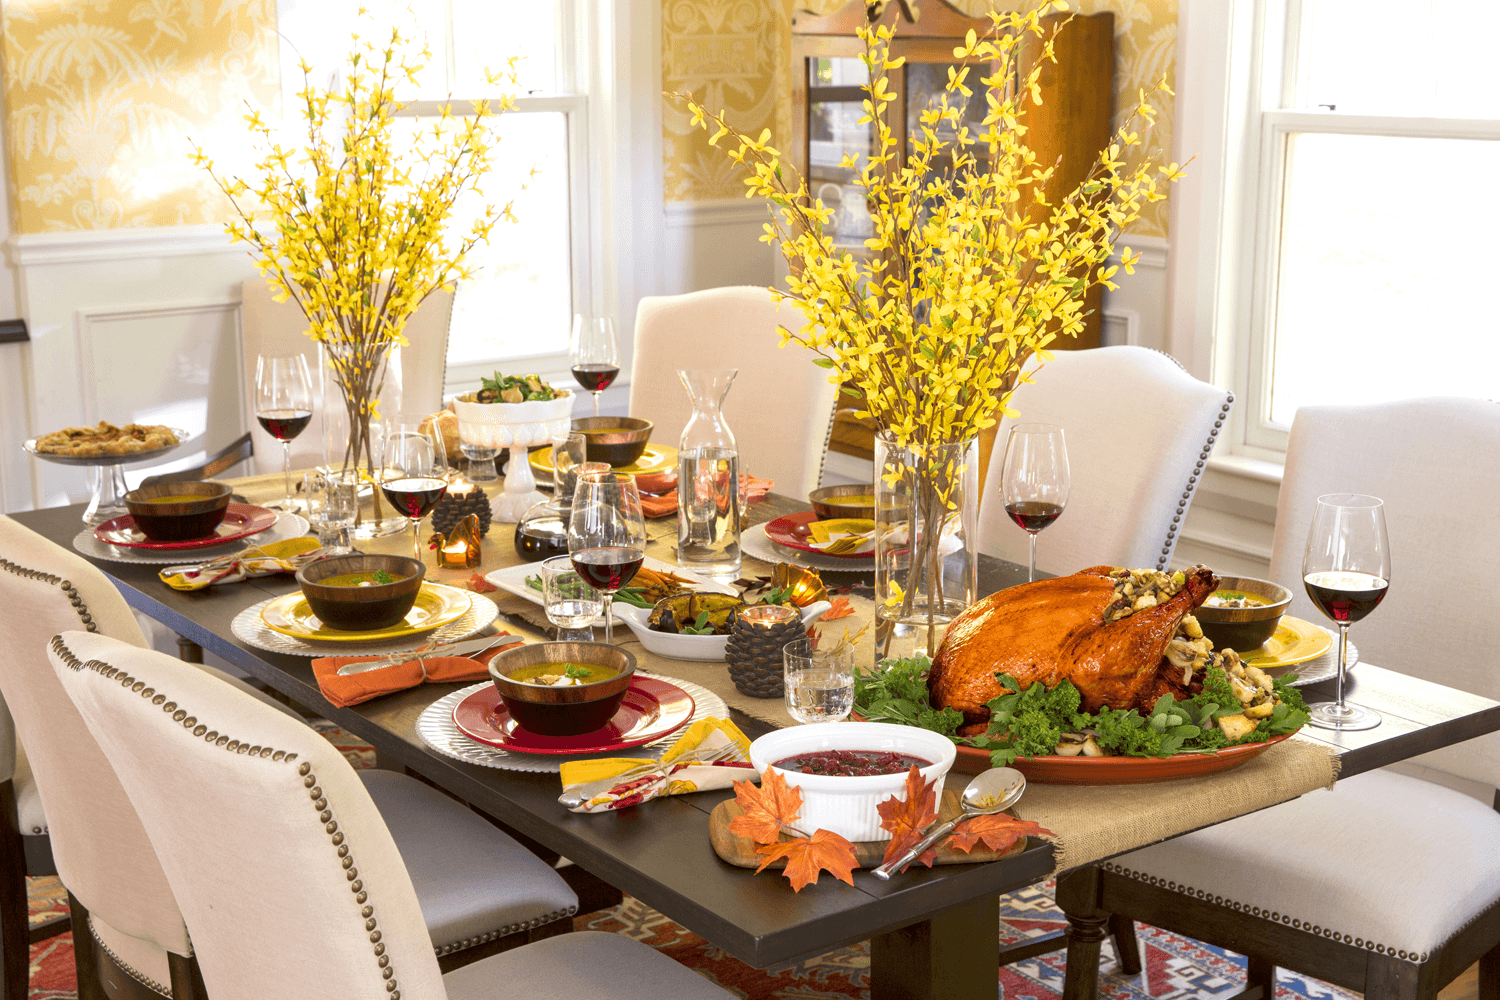 How To Decorate My Dining Room Table For Thanksgiving